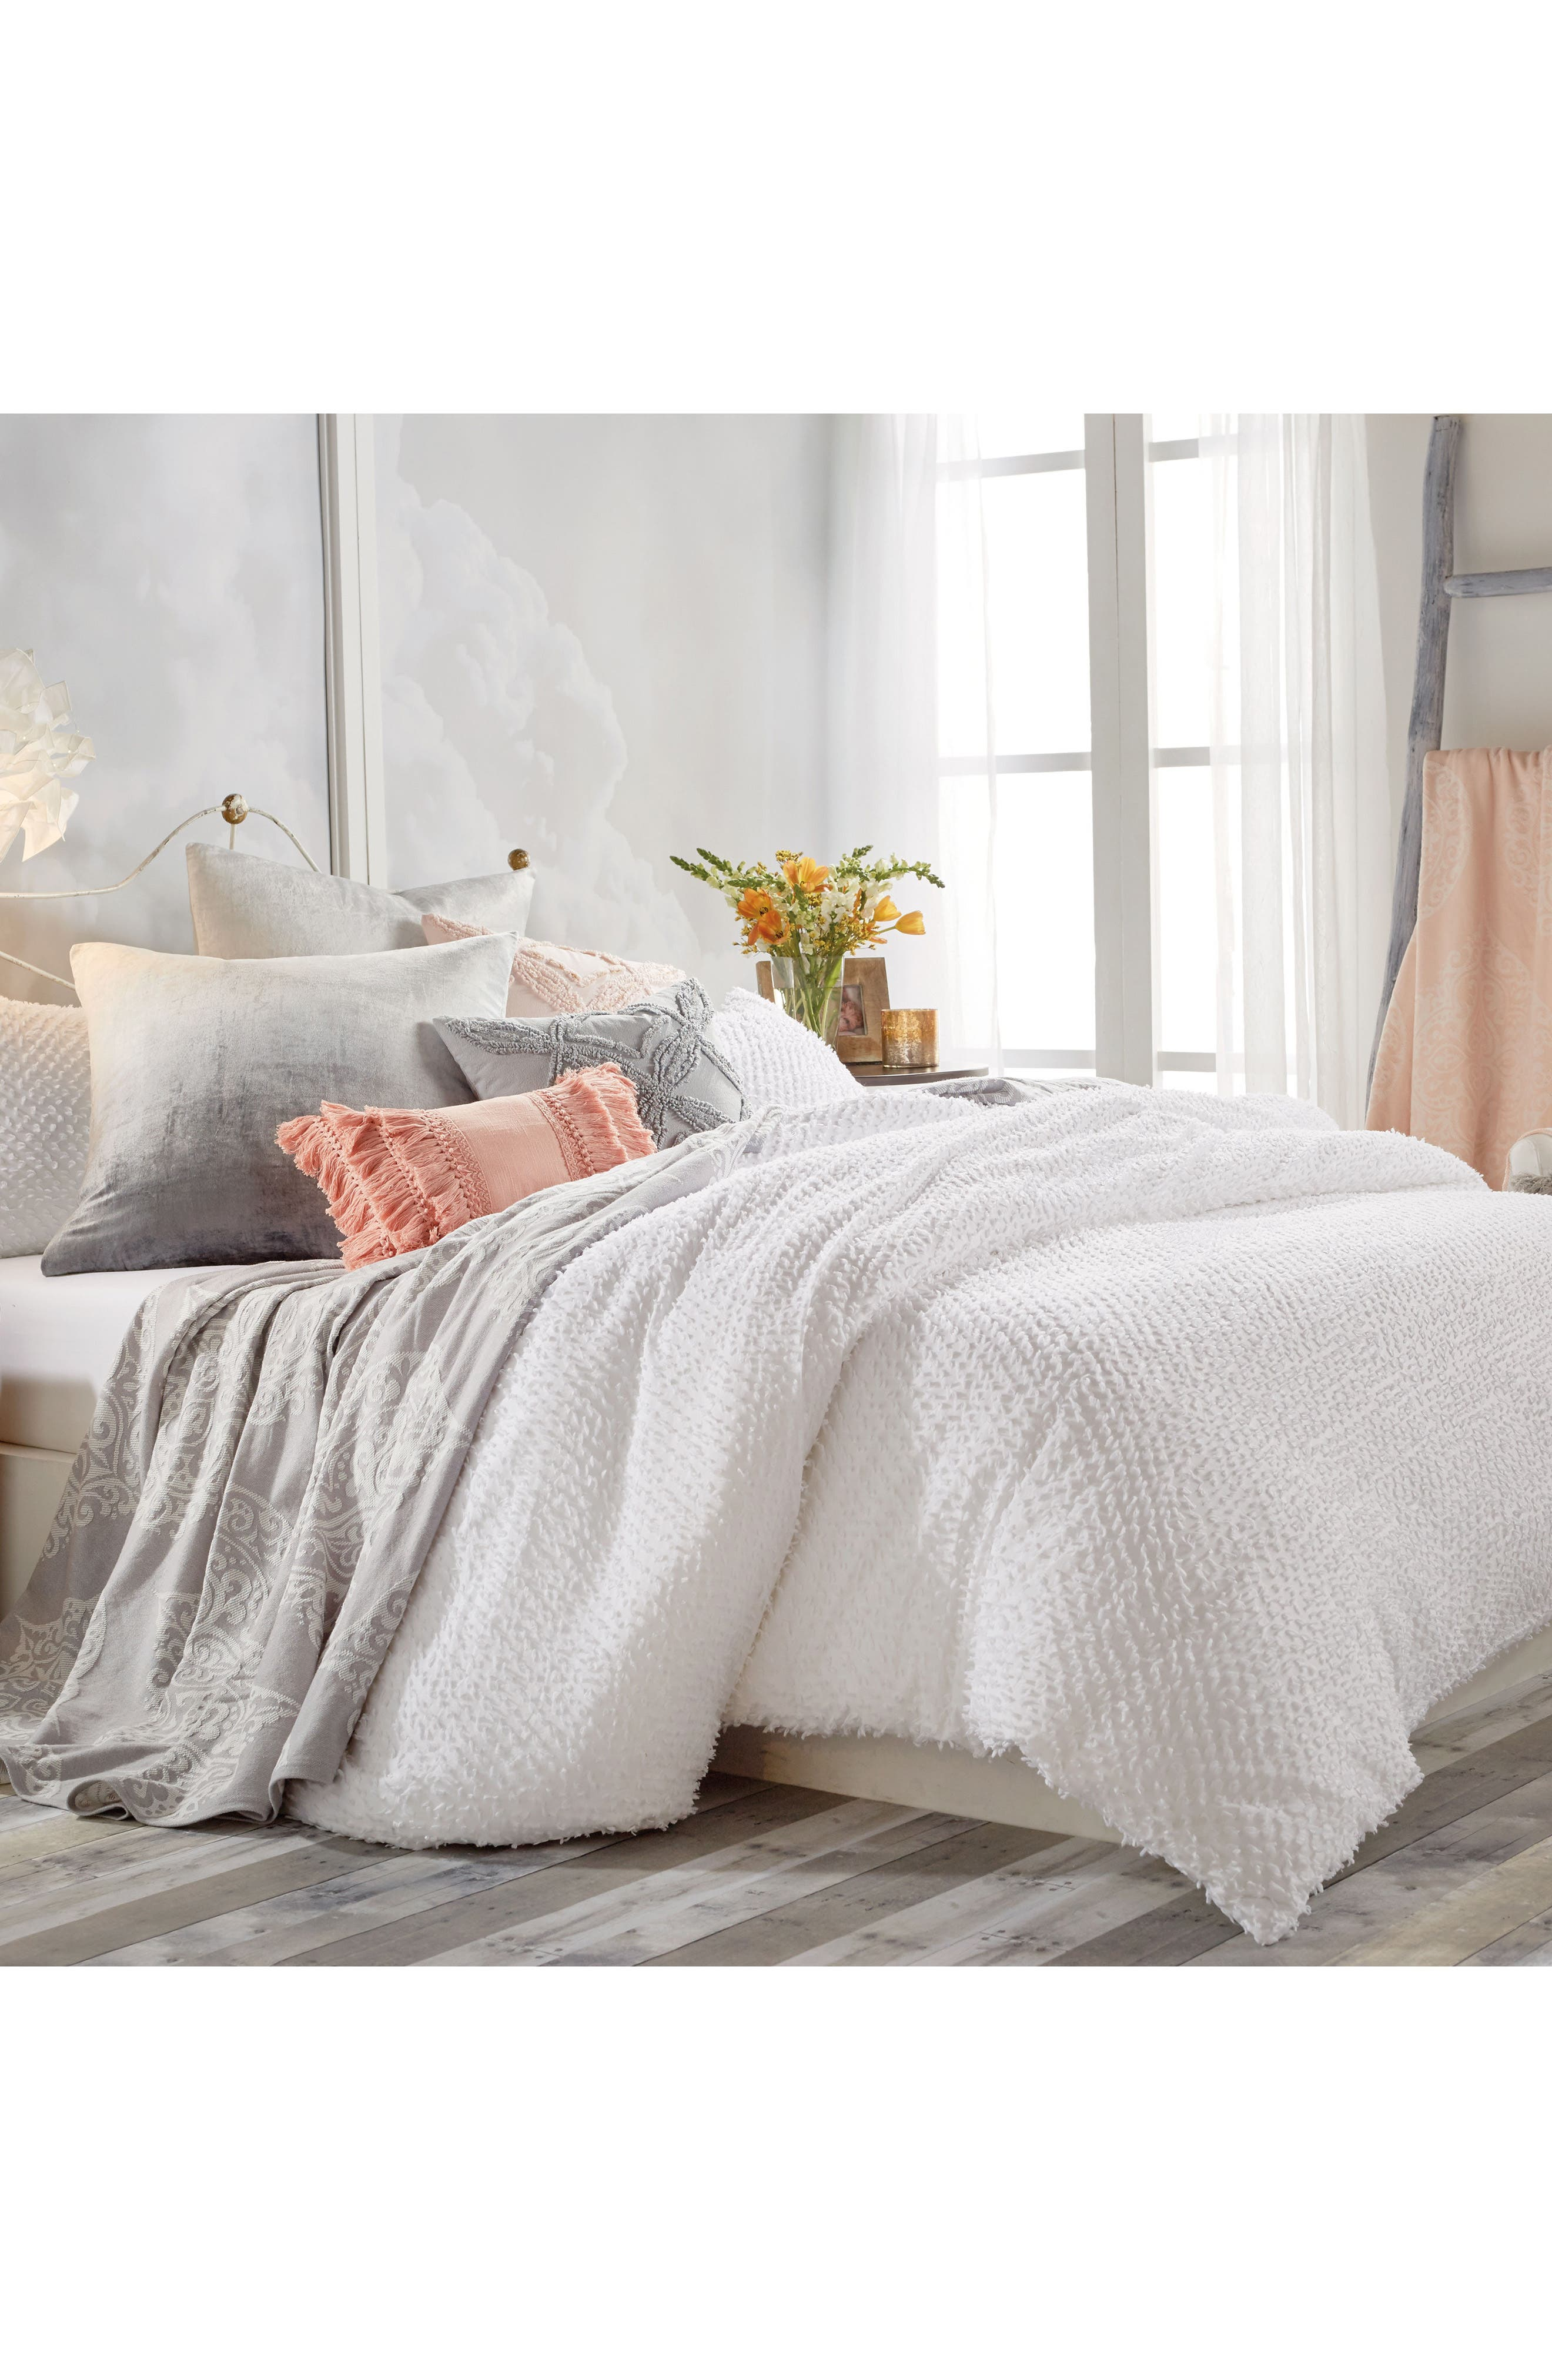 scallop solid cover queen scalloped duvet white elegant bedspread bedding quilt cotton pin king full